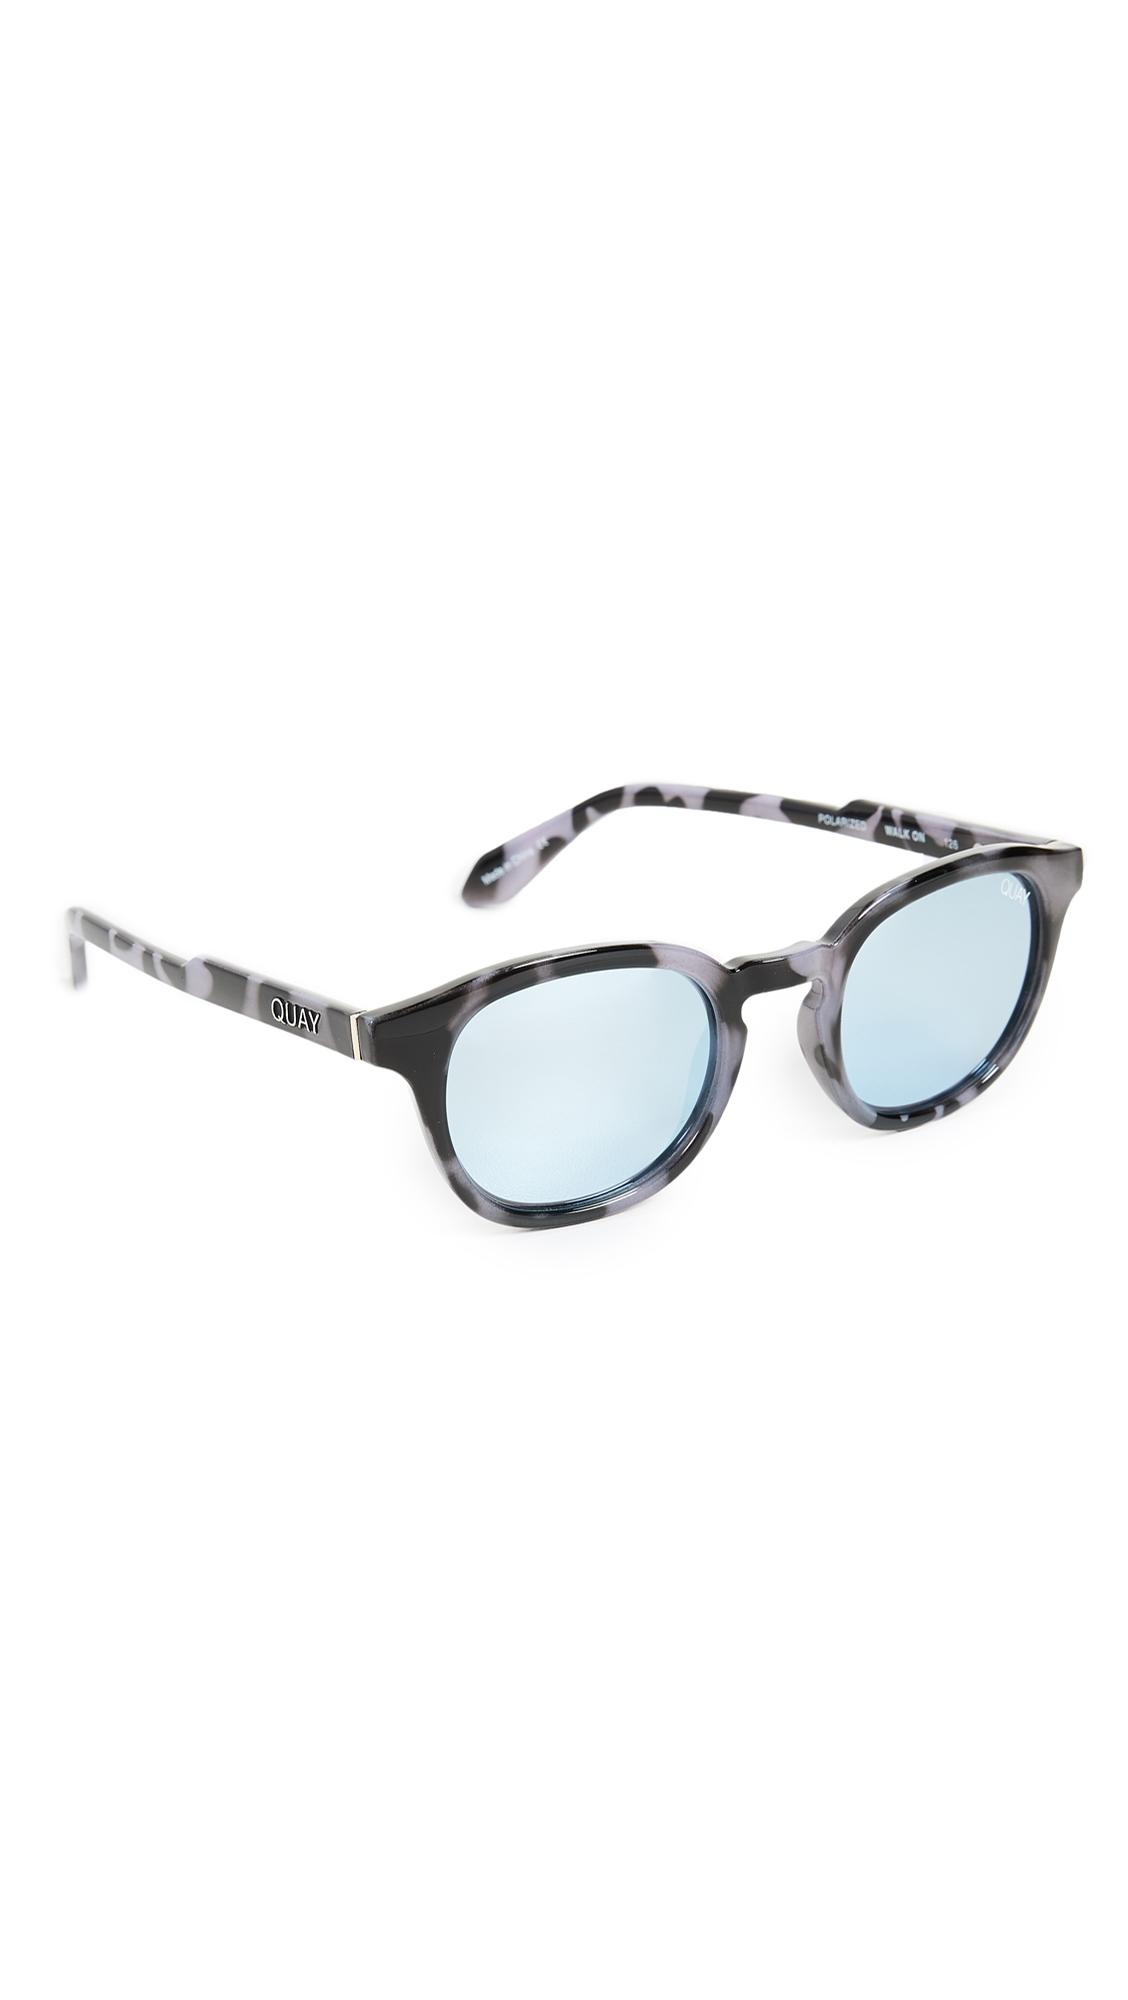 0e8a2b9717c01 Quay Walk On Sunglasses In Navy Tortoise Blue